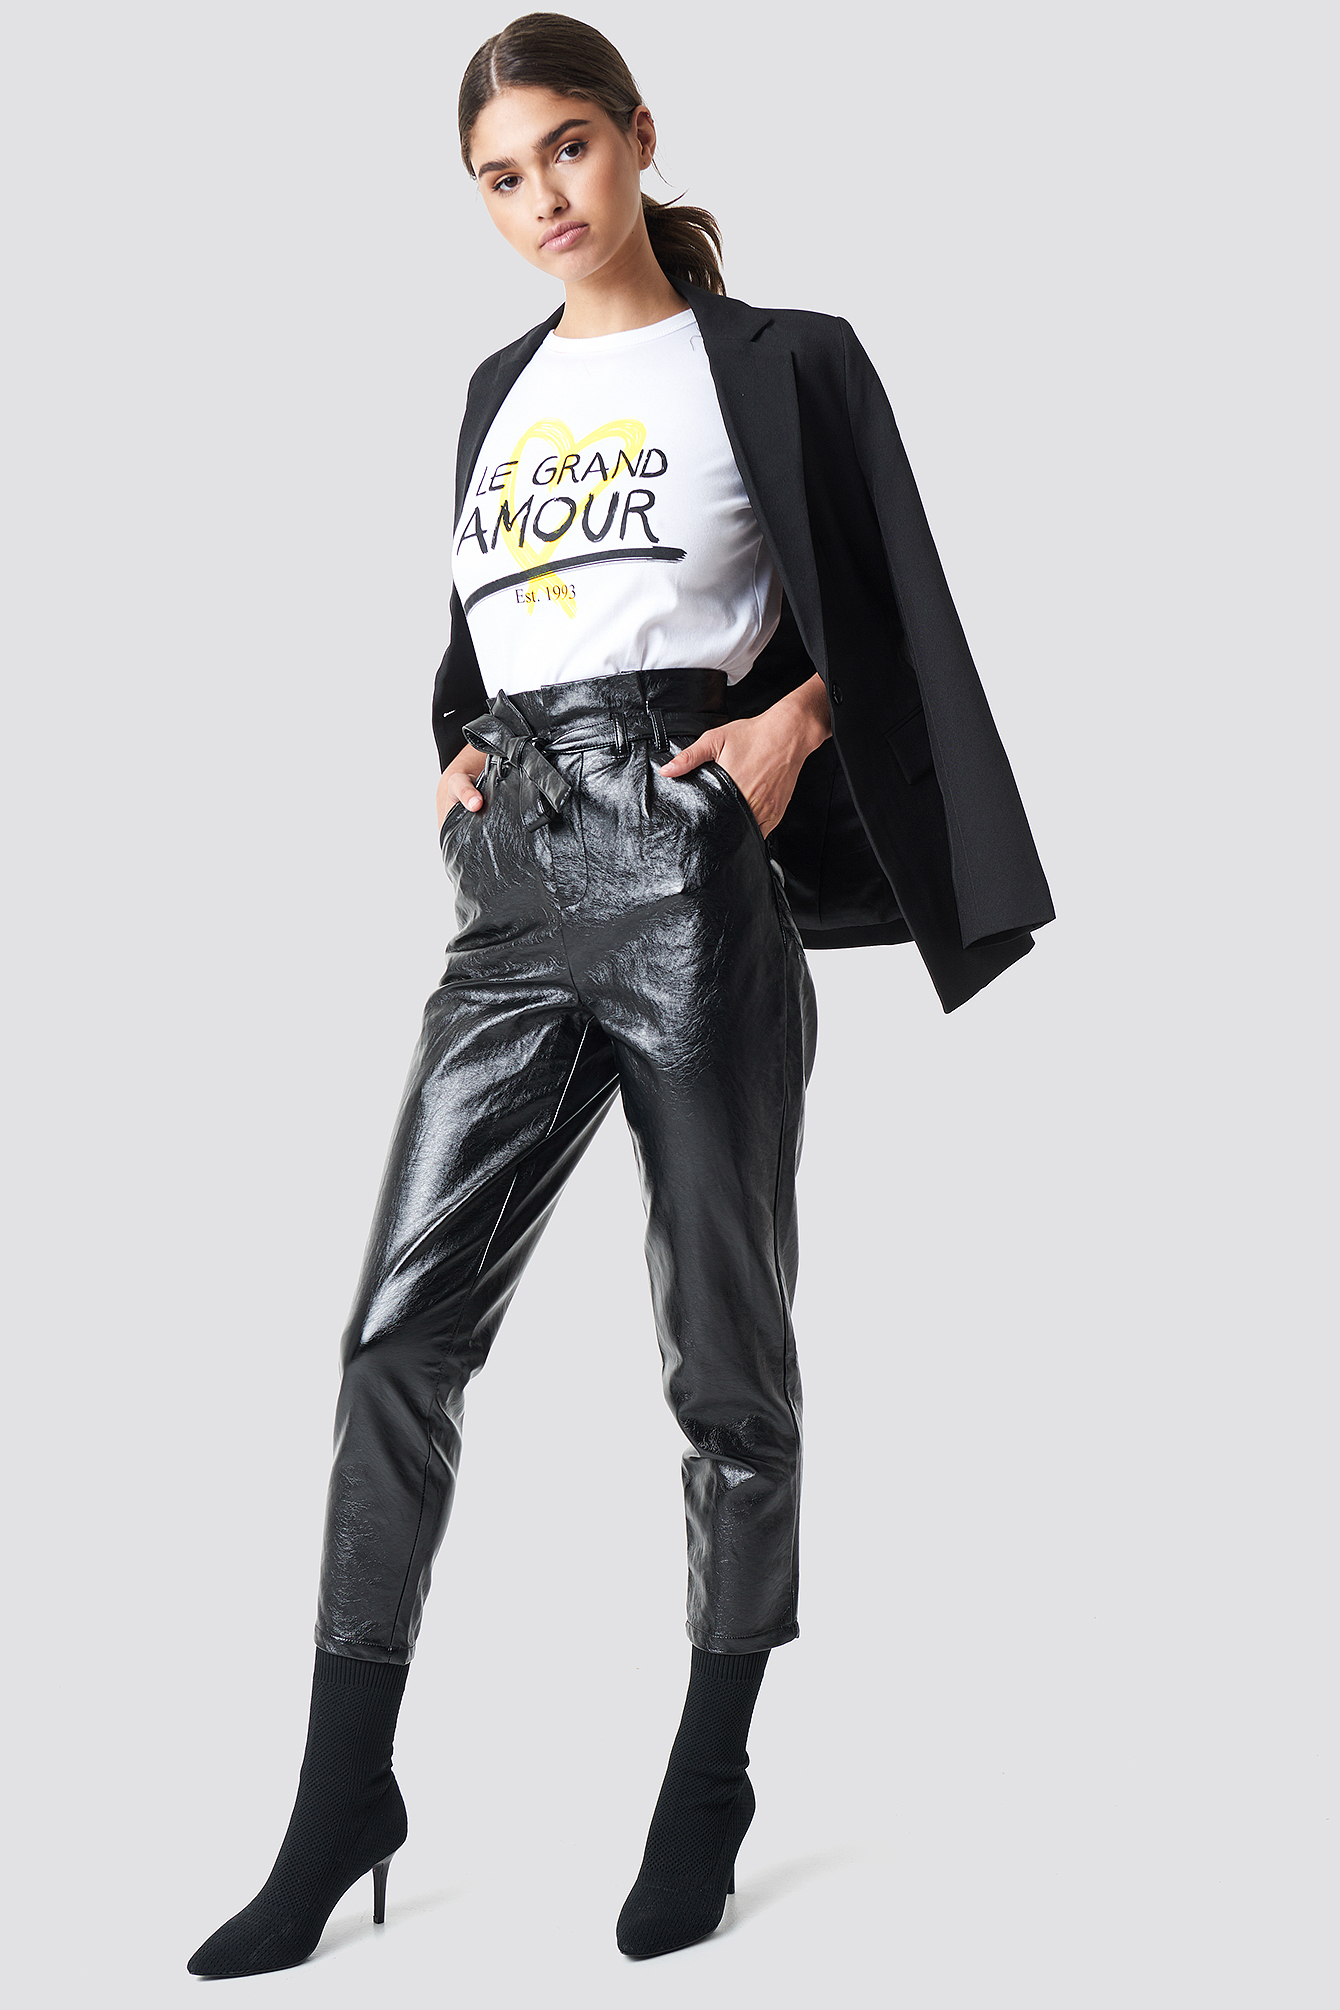 Paperwaist Patent Leather Pants Svart by Na Kd Trend